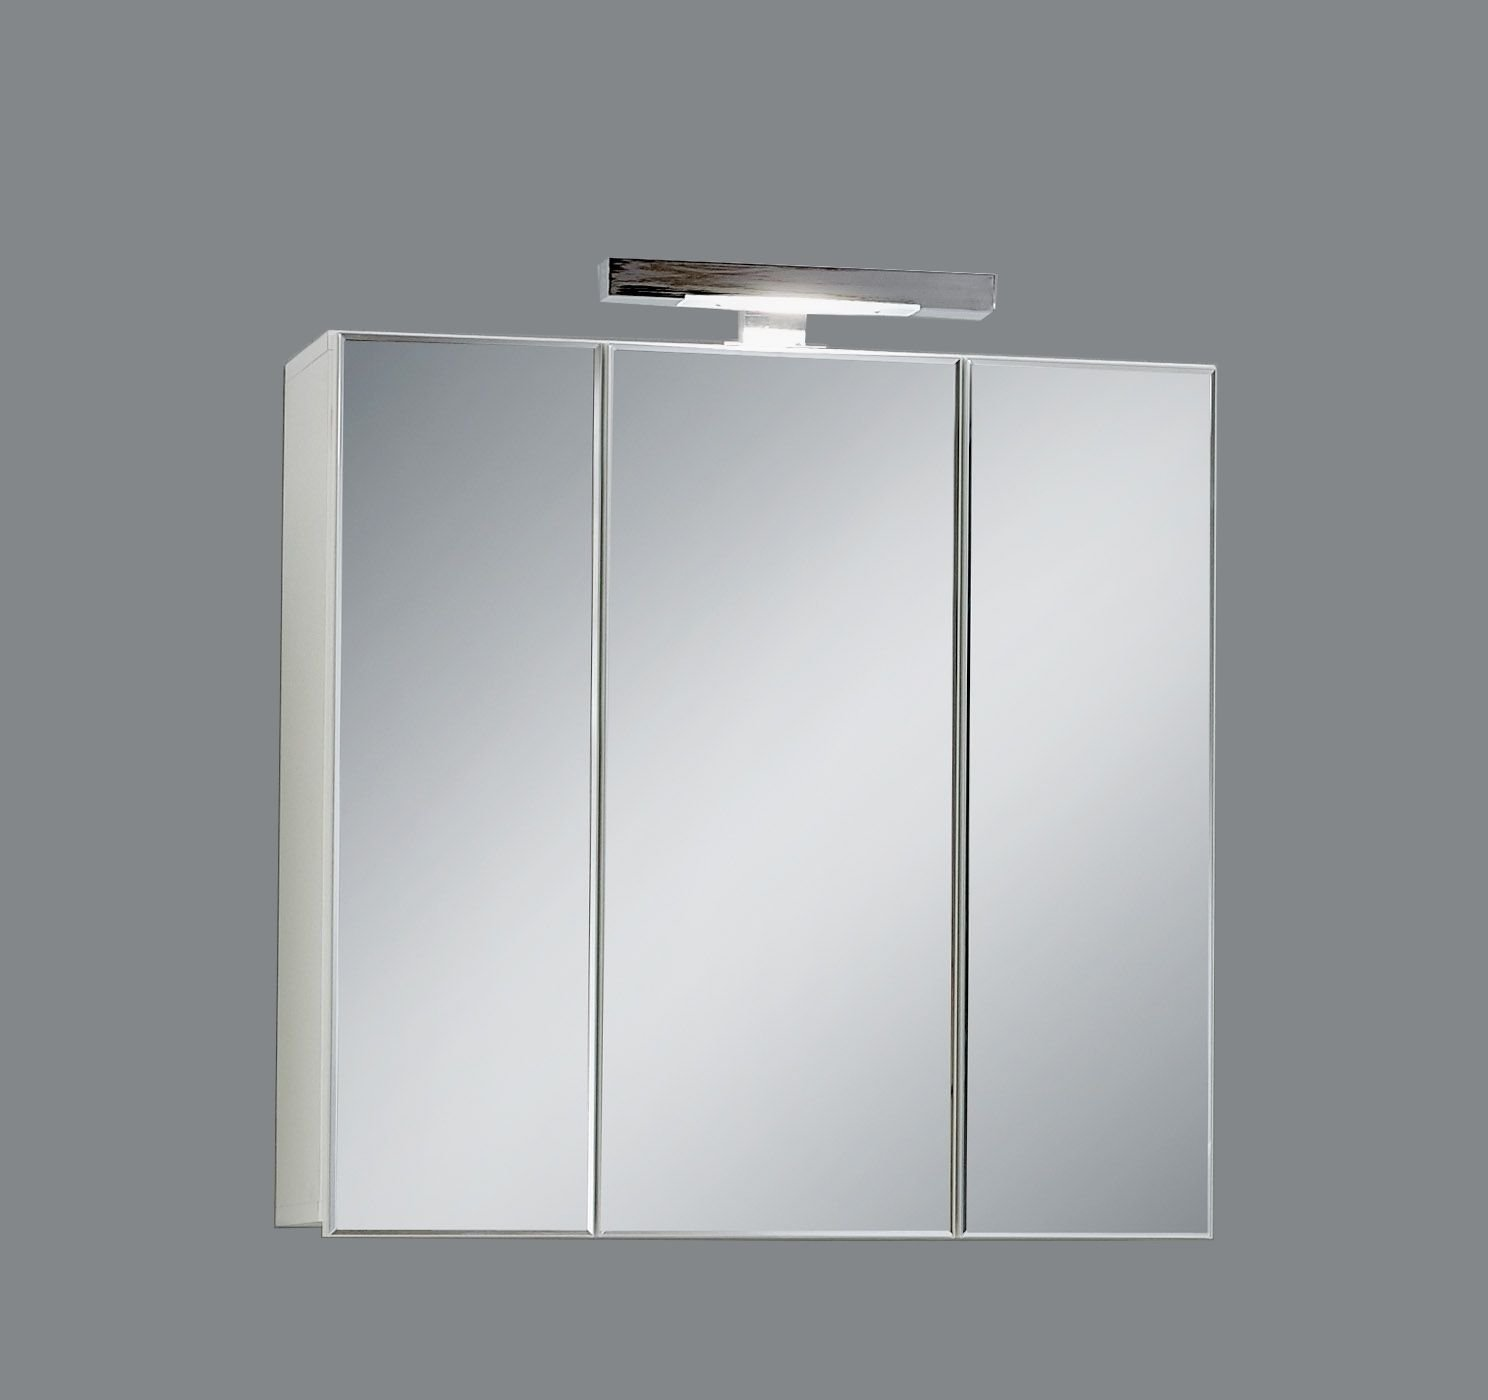 Mirrored Bathroom Cabinets Uk Expo Double Mirror Bathroom Cabinet Shaver Socket Lights White